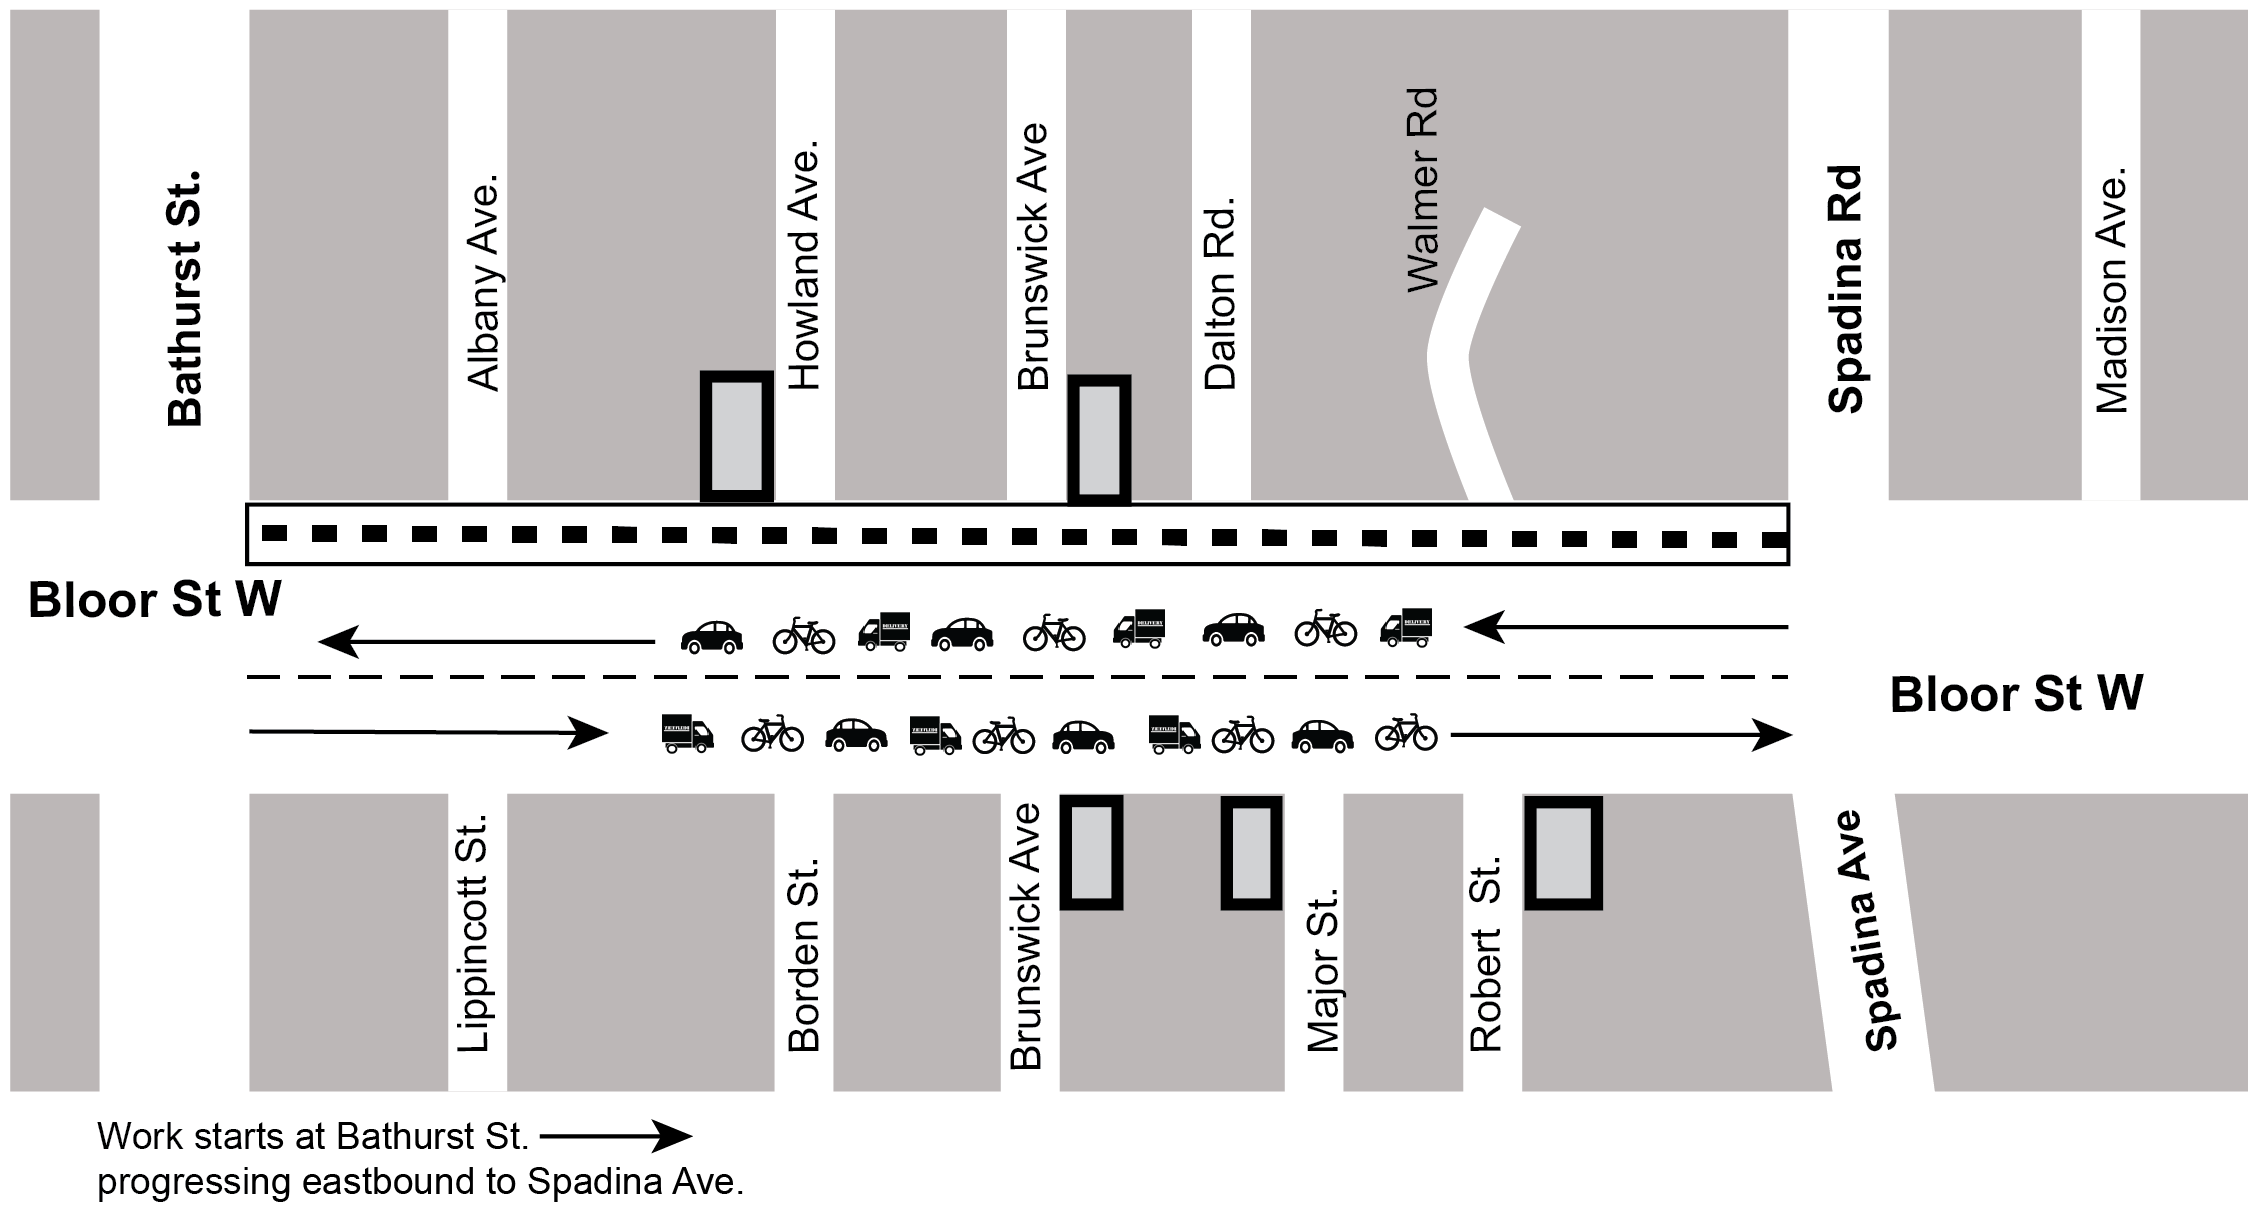 Map of construction area indicating direction of traffic along Bloor St West during the construction